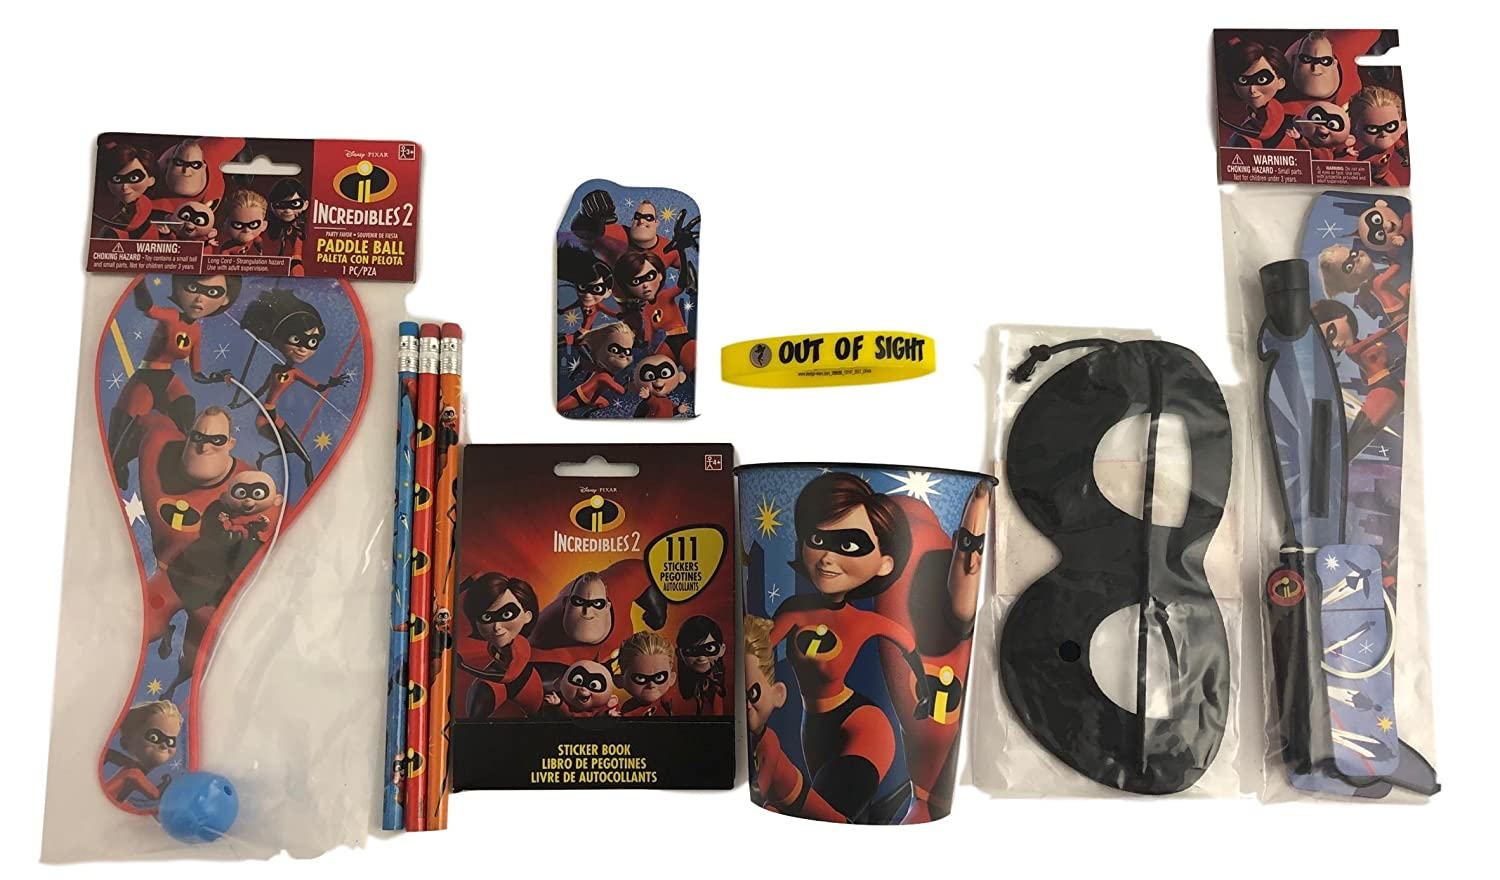 Prizes Generic Incredibles 2 Gift Basket Box for Kids Premade Prefilled for Birthday Get Well